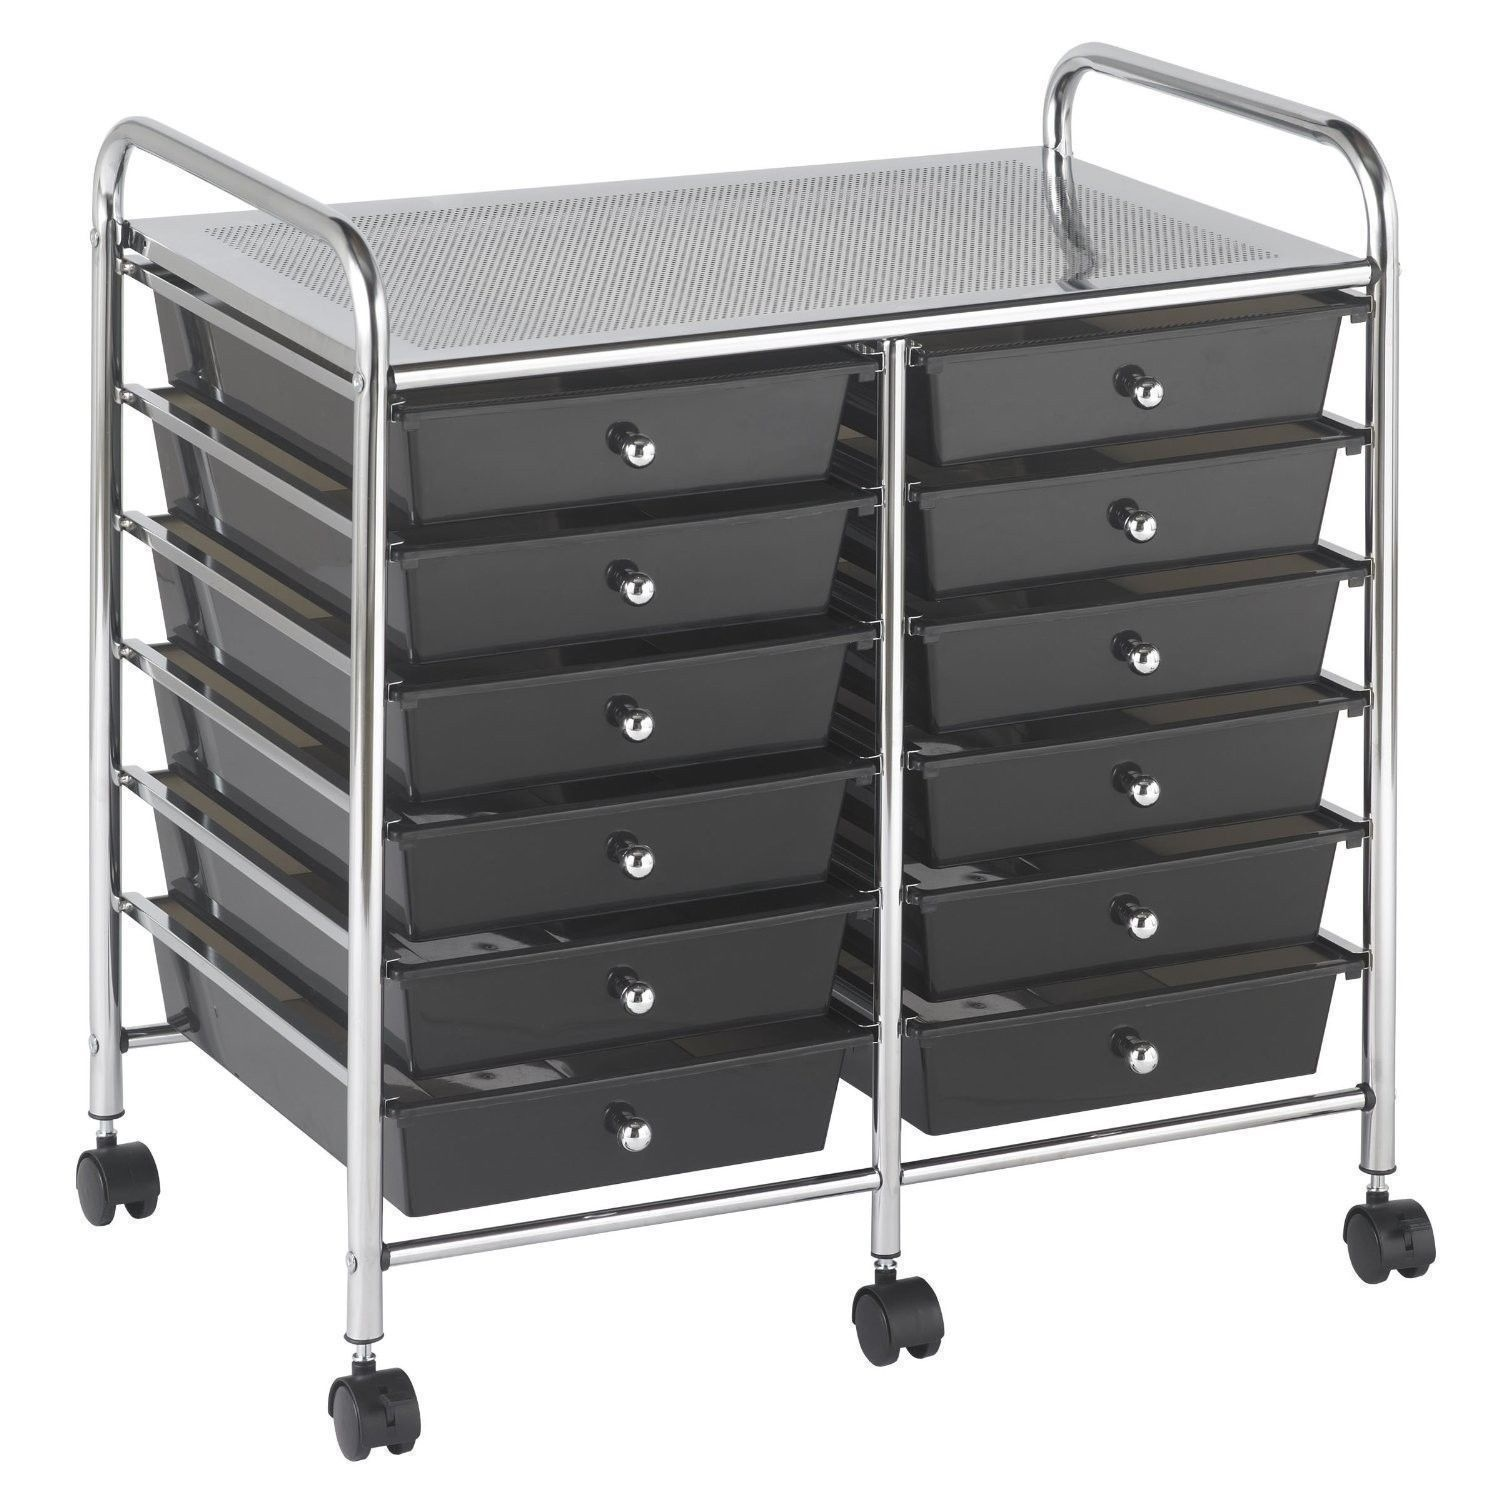 New Rolling Storage Organization 12 Shelves Plastic Drawers